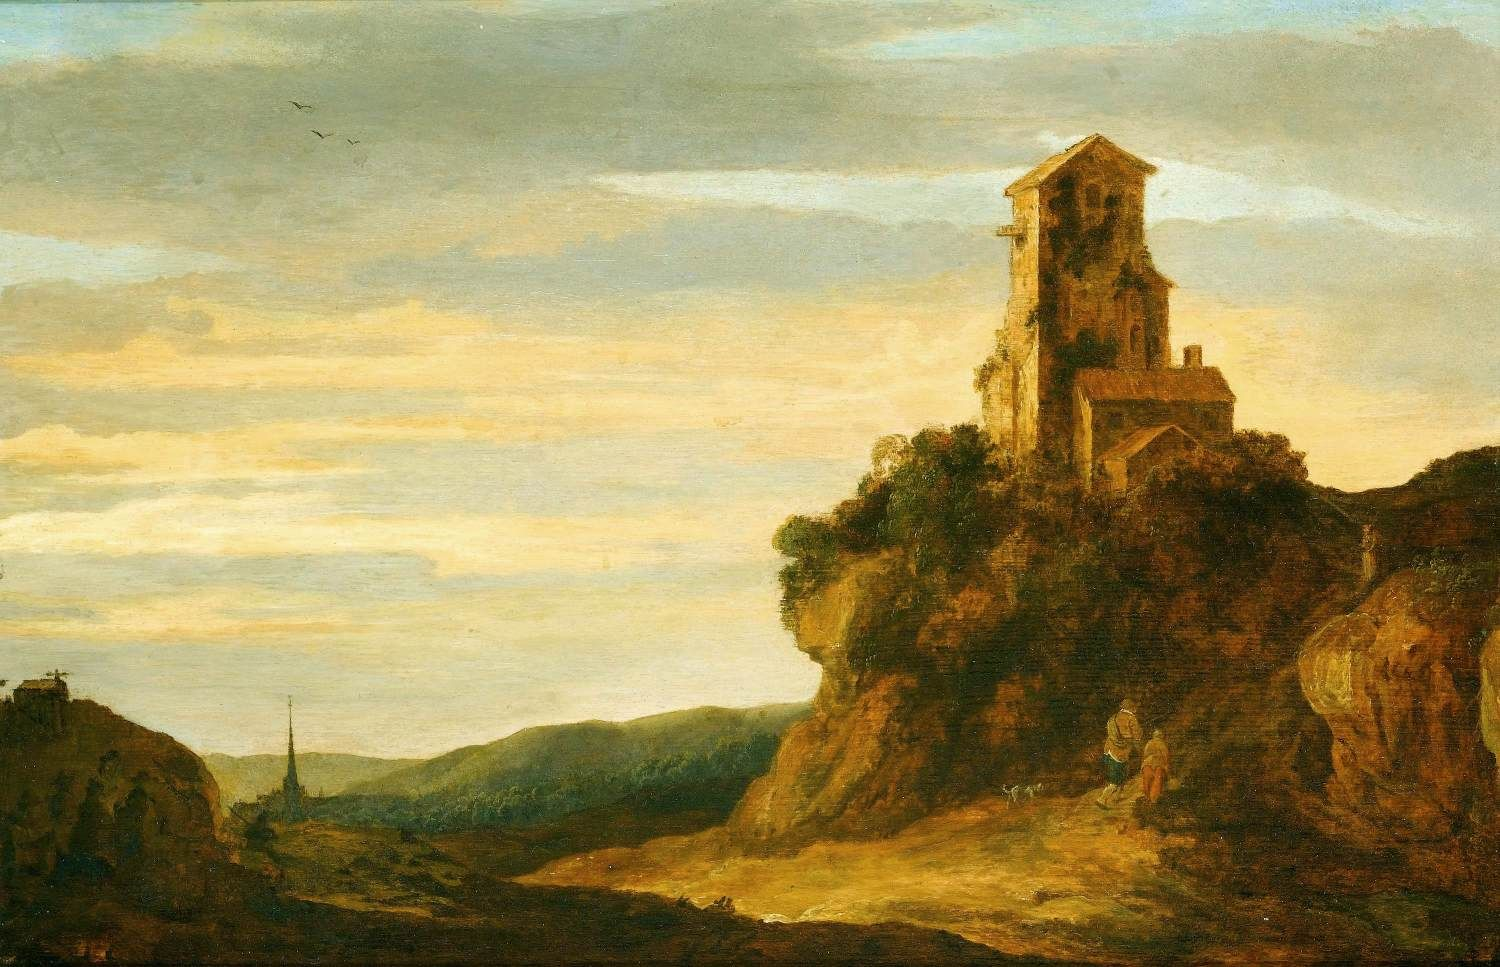 Hilly Landscape with House | Pieter de Molijn | Oil Painting